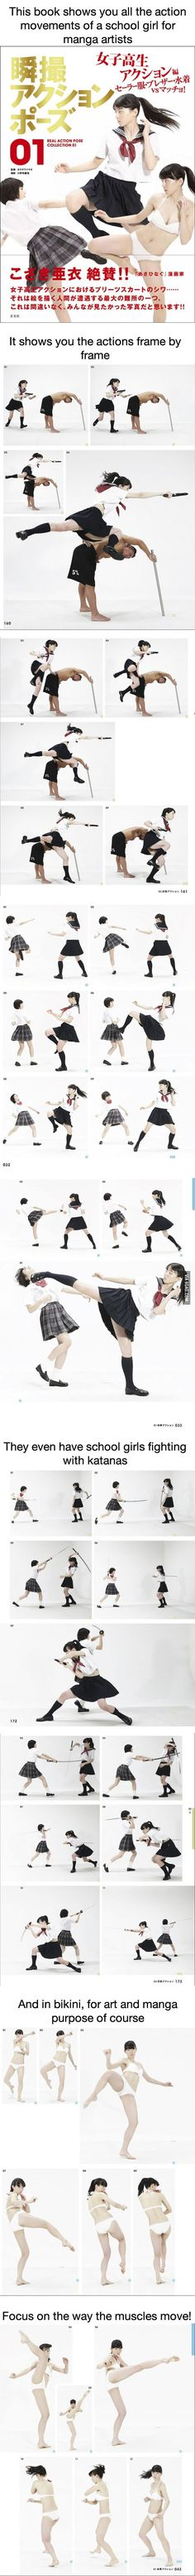 There's a reference book to teach you how to draw fighting school girls - 9GAG